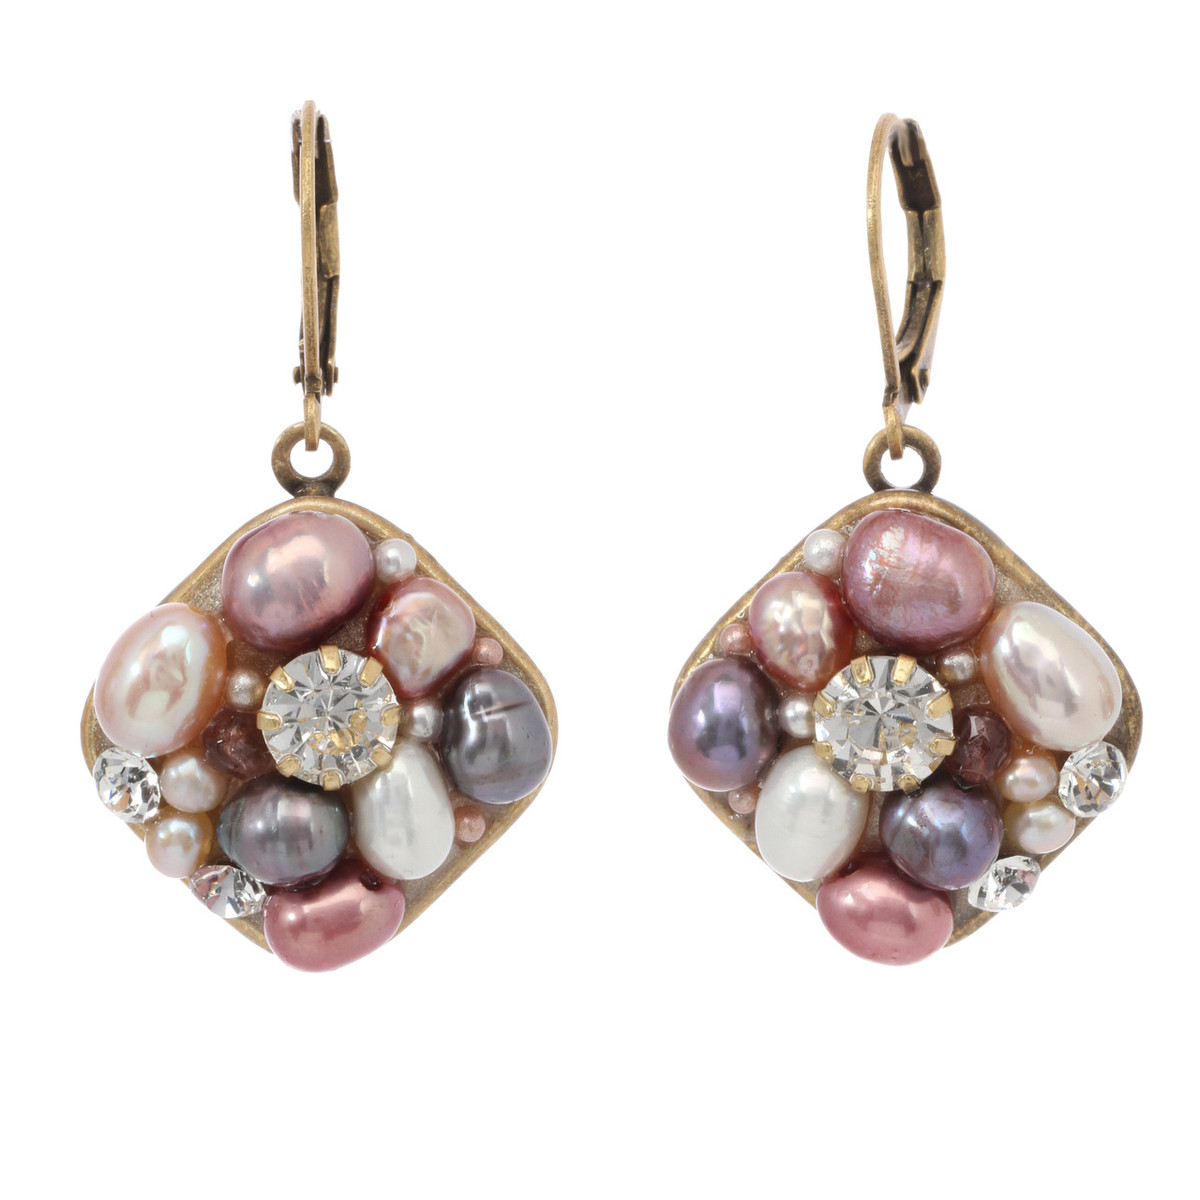 Pink Medium Square earrings from Michal Golan Jewelry